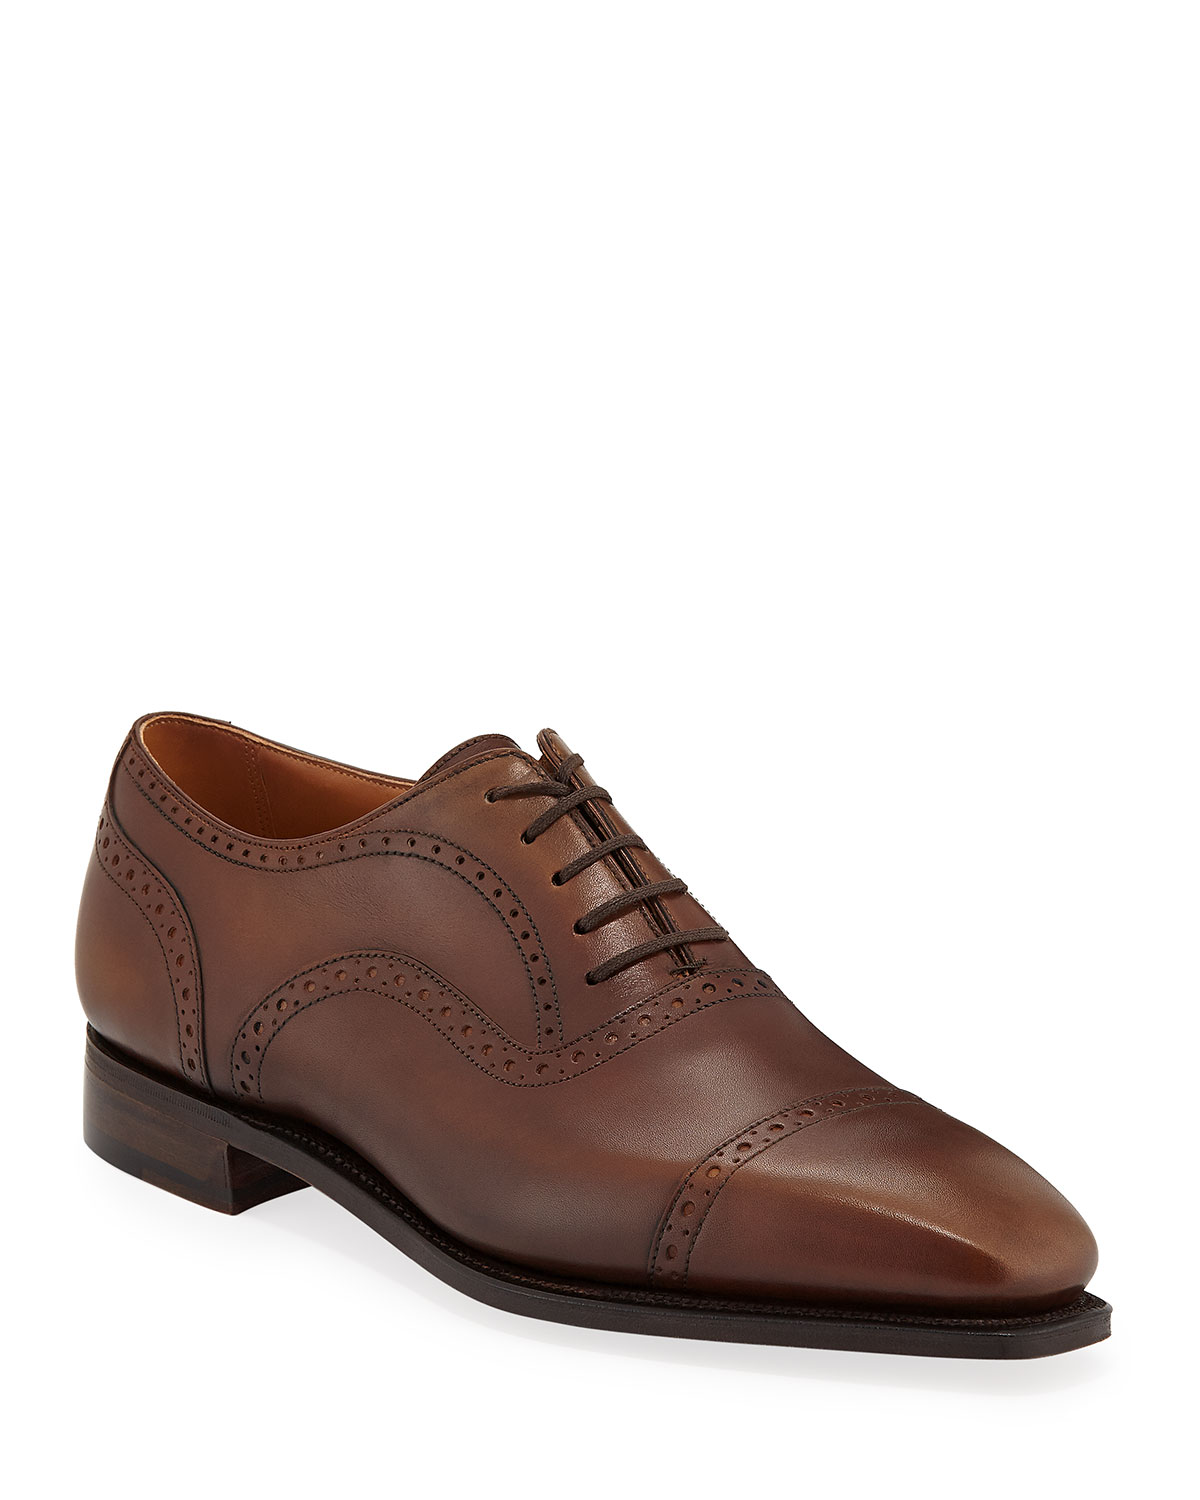 CORTHAY Men'S Cap-Toe Dress Shoes With Brogue Details in Brown